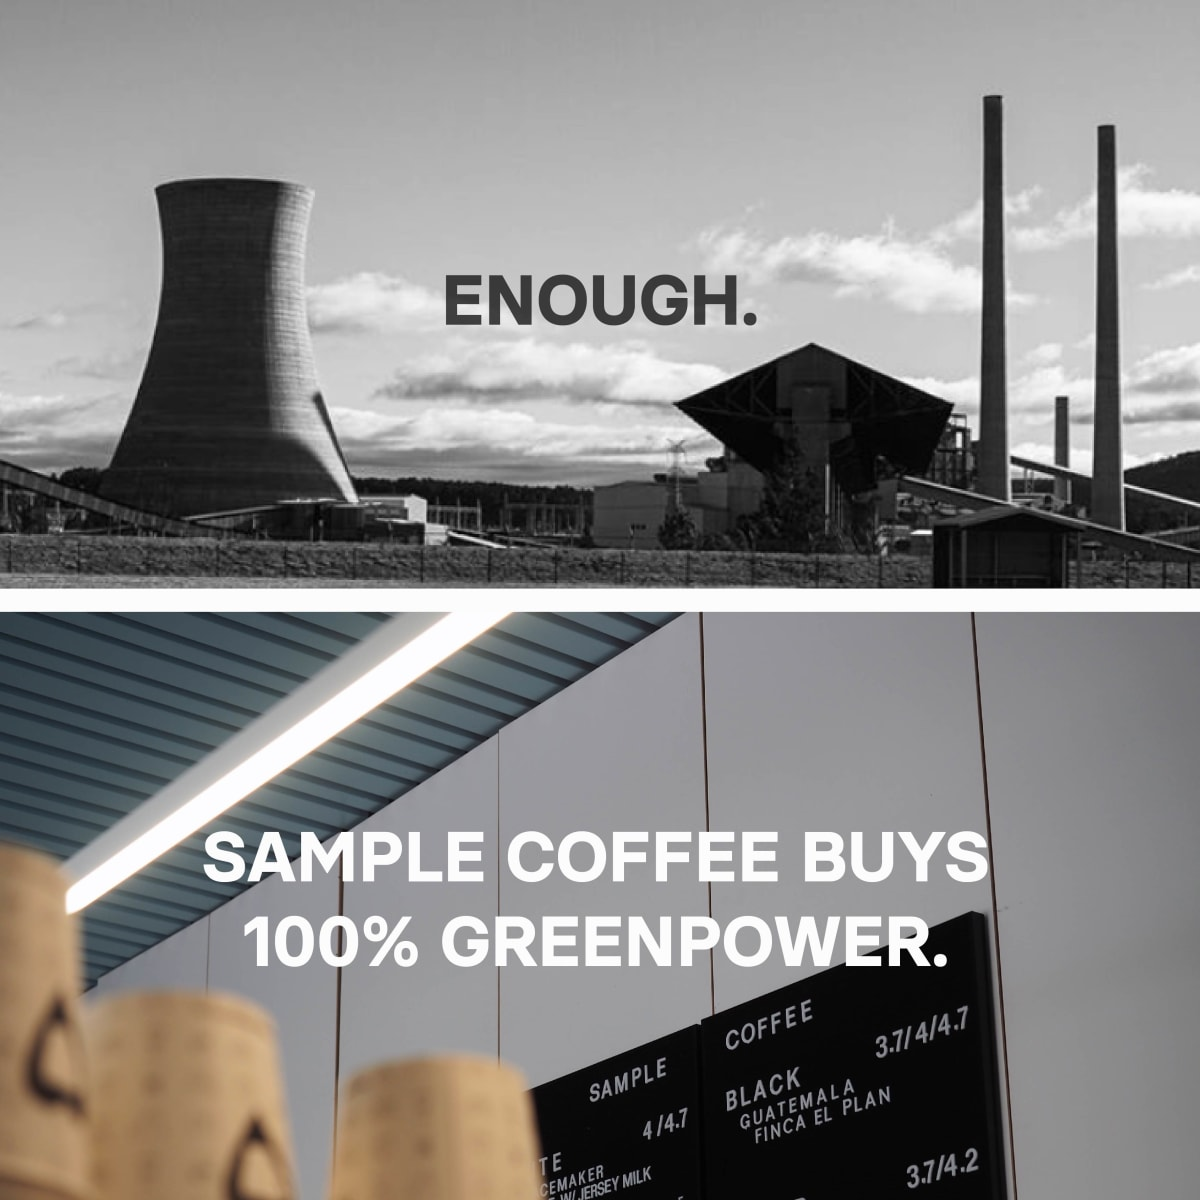 Sample Coffee buys renewable energy for their roastery and cafes